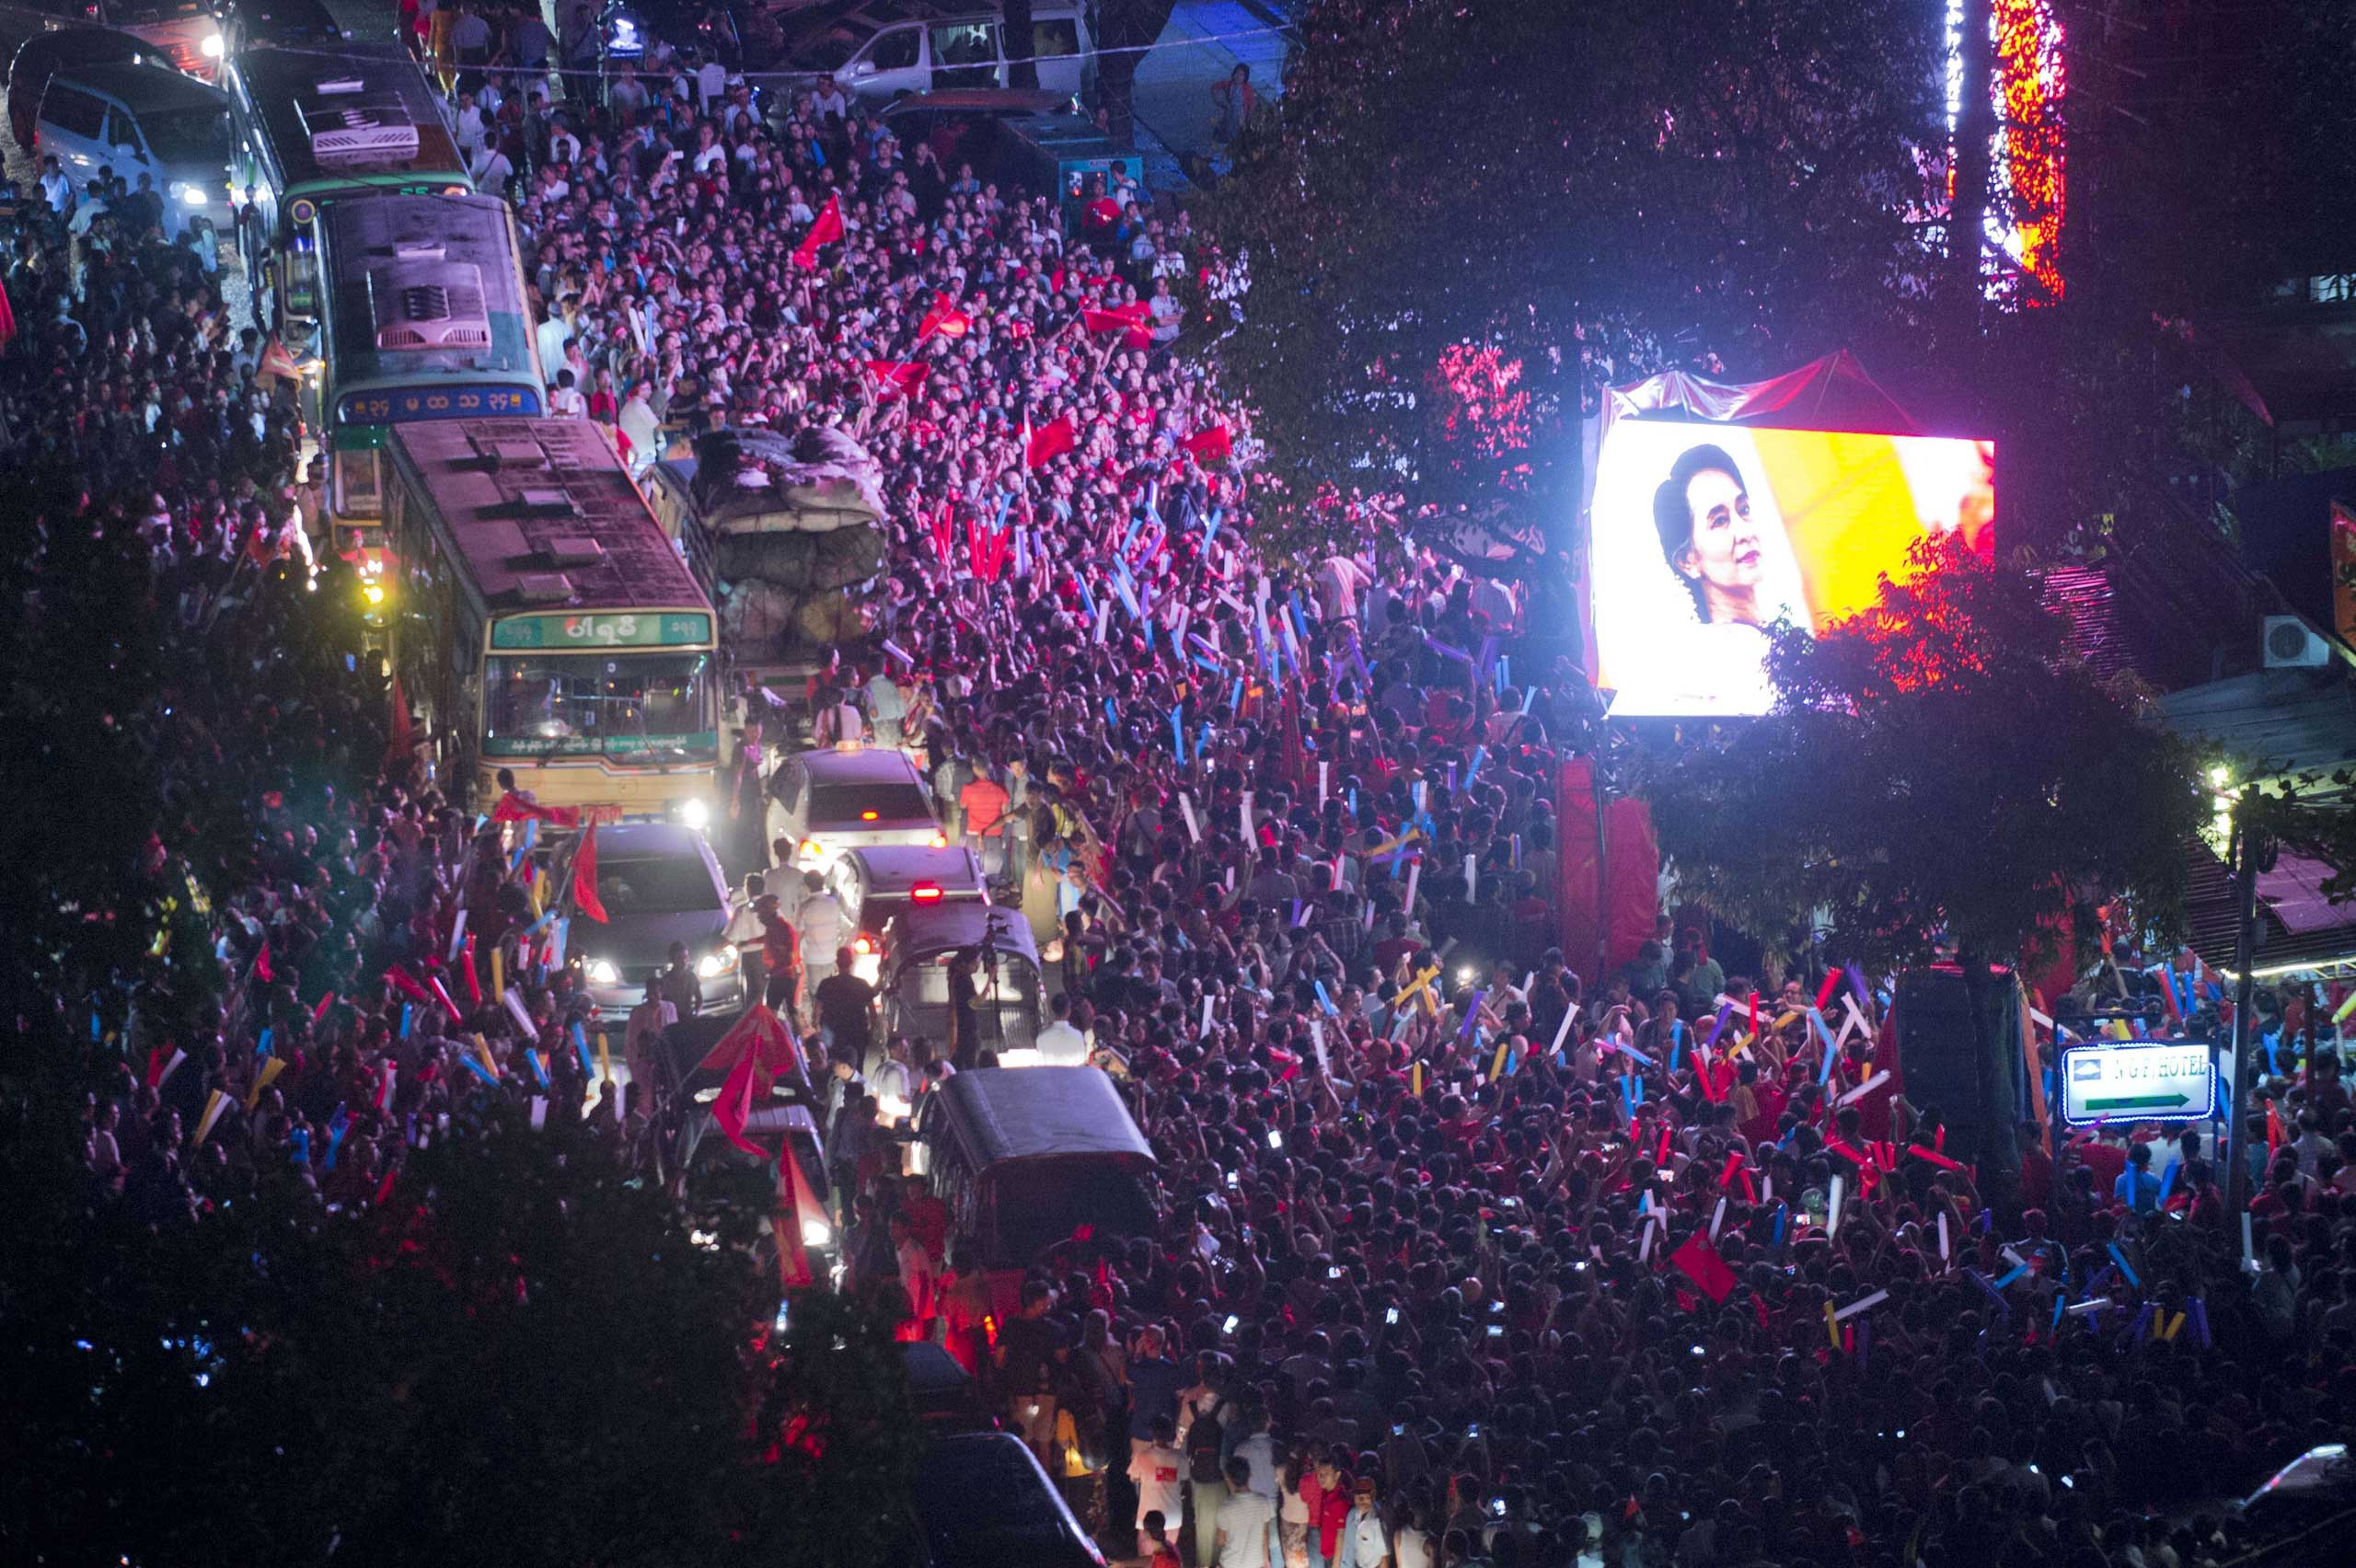 A huge crowd gathers outside the headquarters of National League of Democracy (NLD) party displaying a huge portrait of Aung San Suu Kyi in Rangoon, Burma, on Nov. 9, 2015.